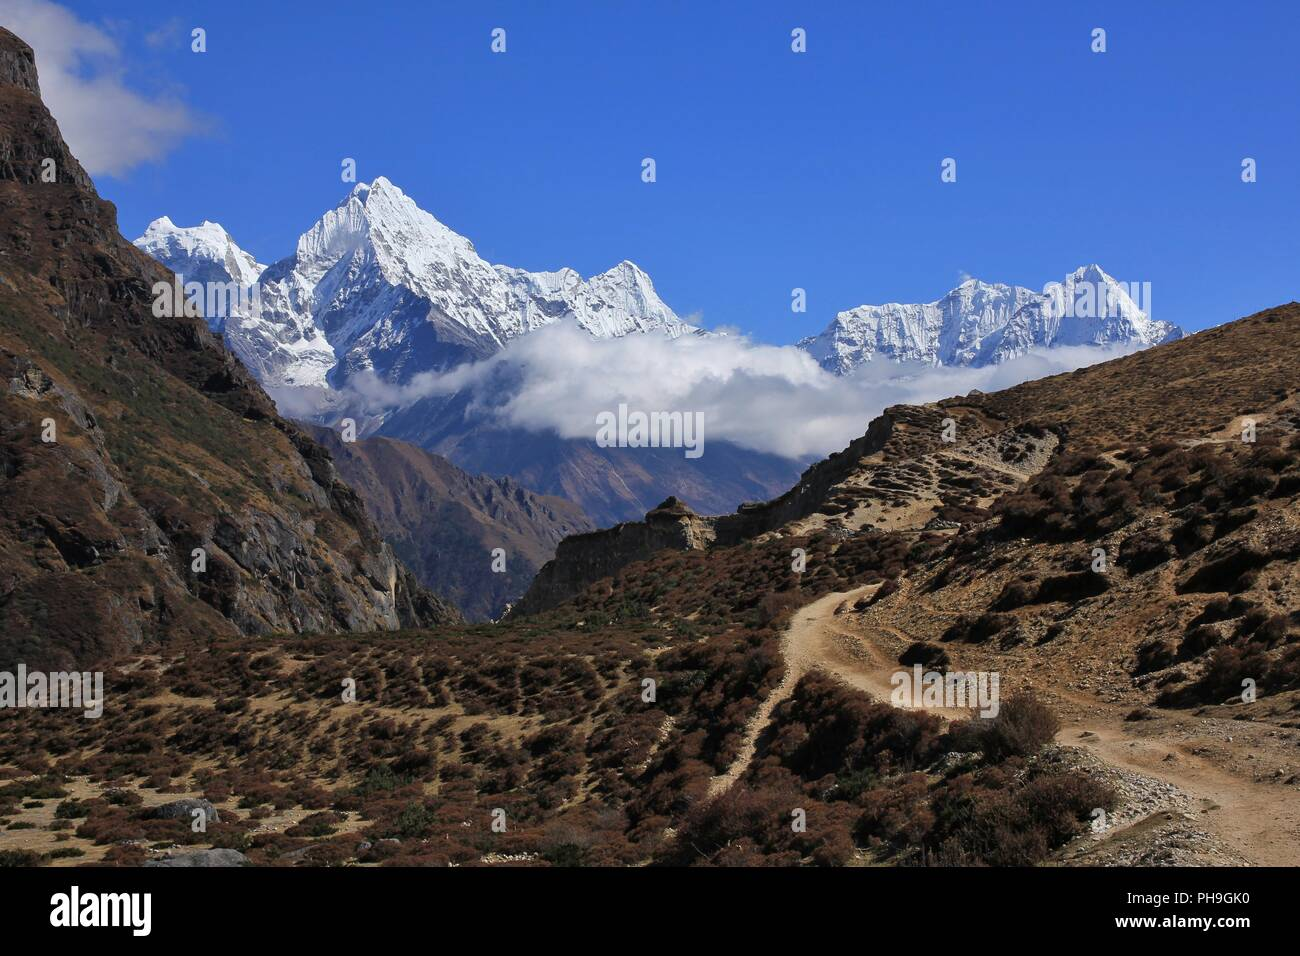 Trail in the Thame valley, Everest National Park - Stock Image